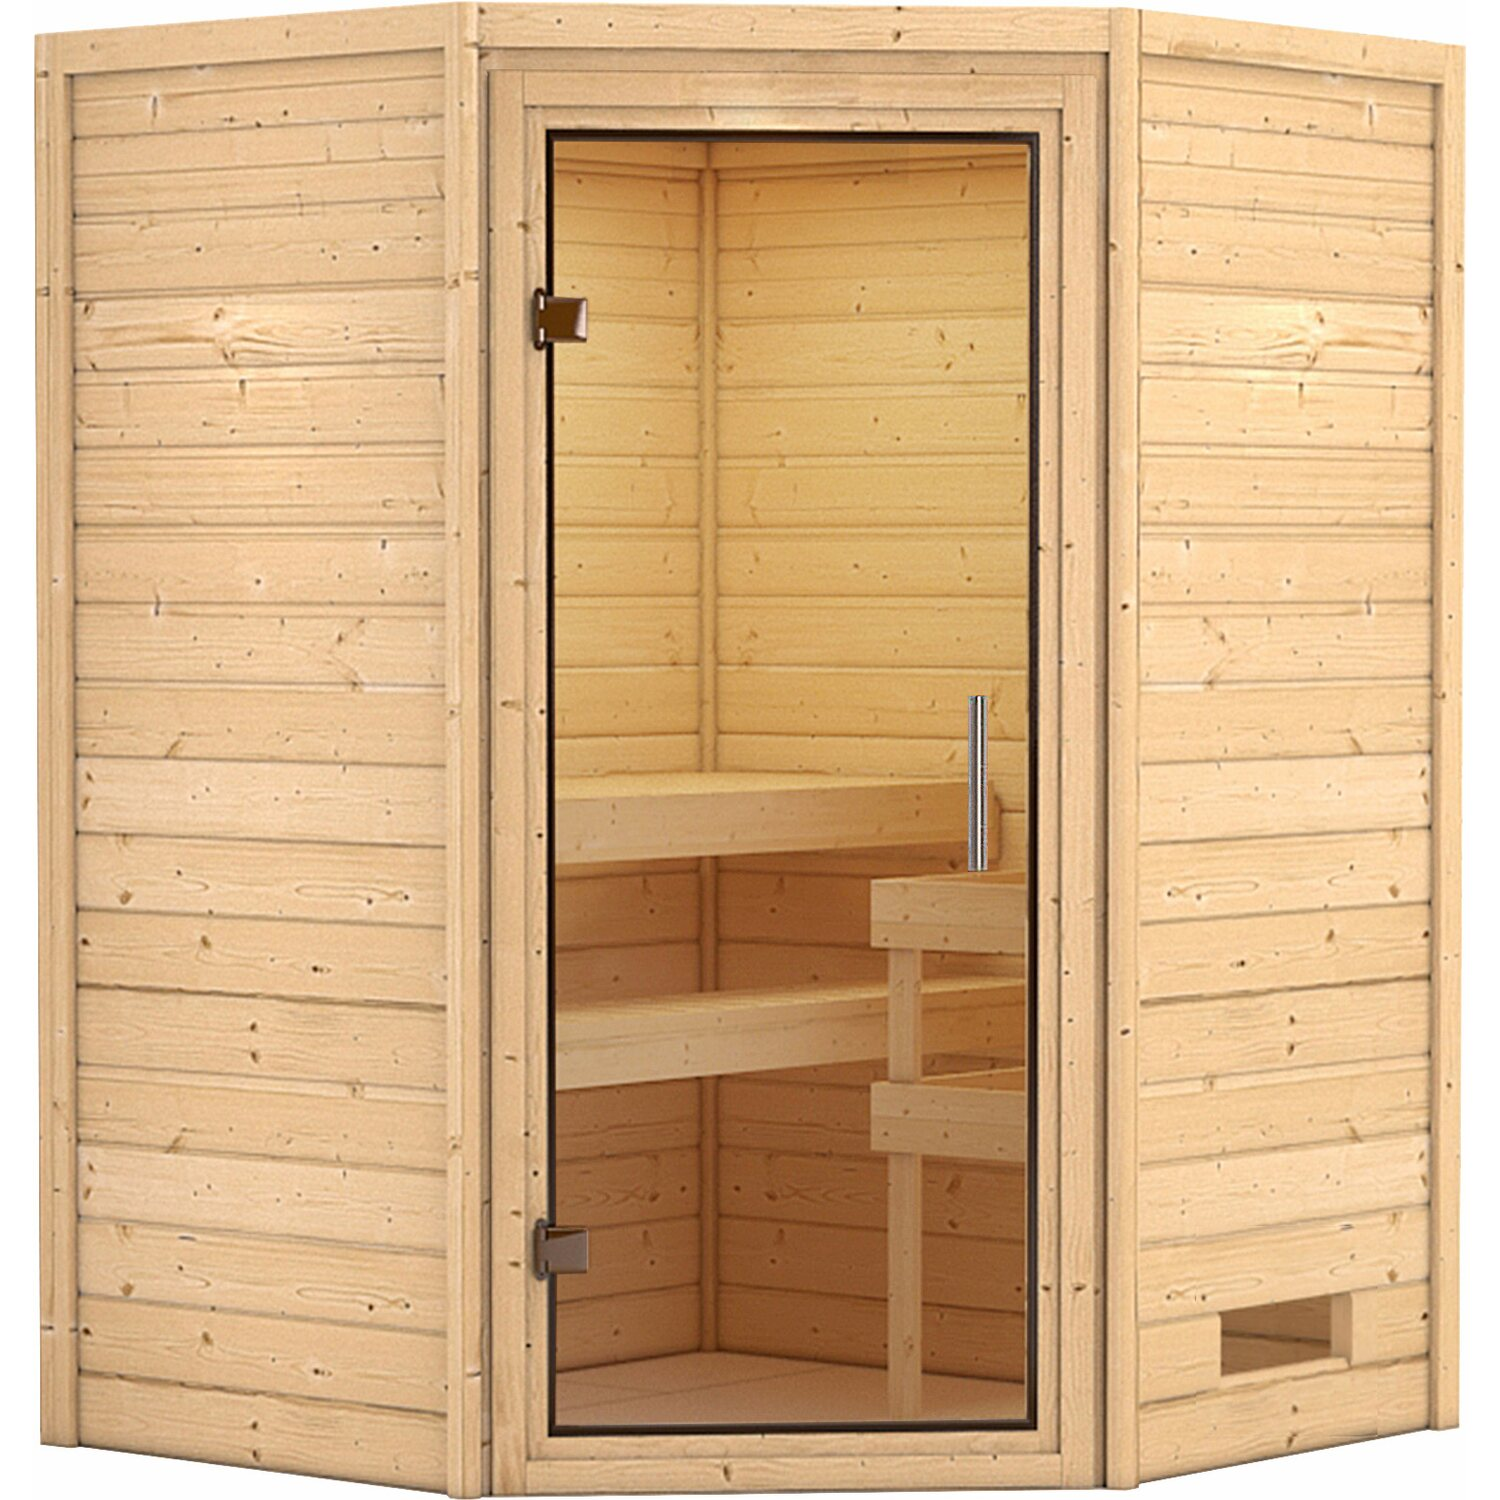 karibu sauna franka mit klar ganzglast r eckeinstieg ohne kranz kaufen bei obi. Black Bedroom Furniture Sets. Home Design Ideas